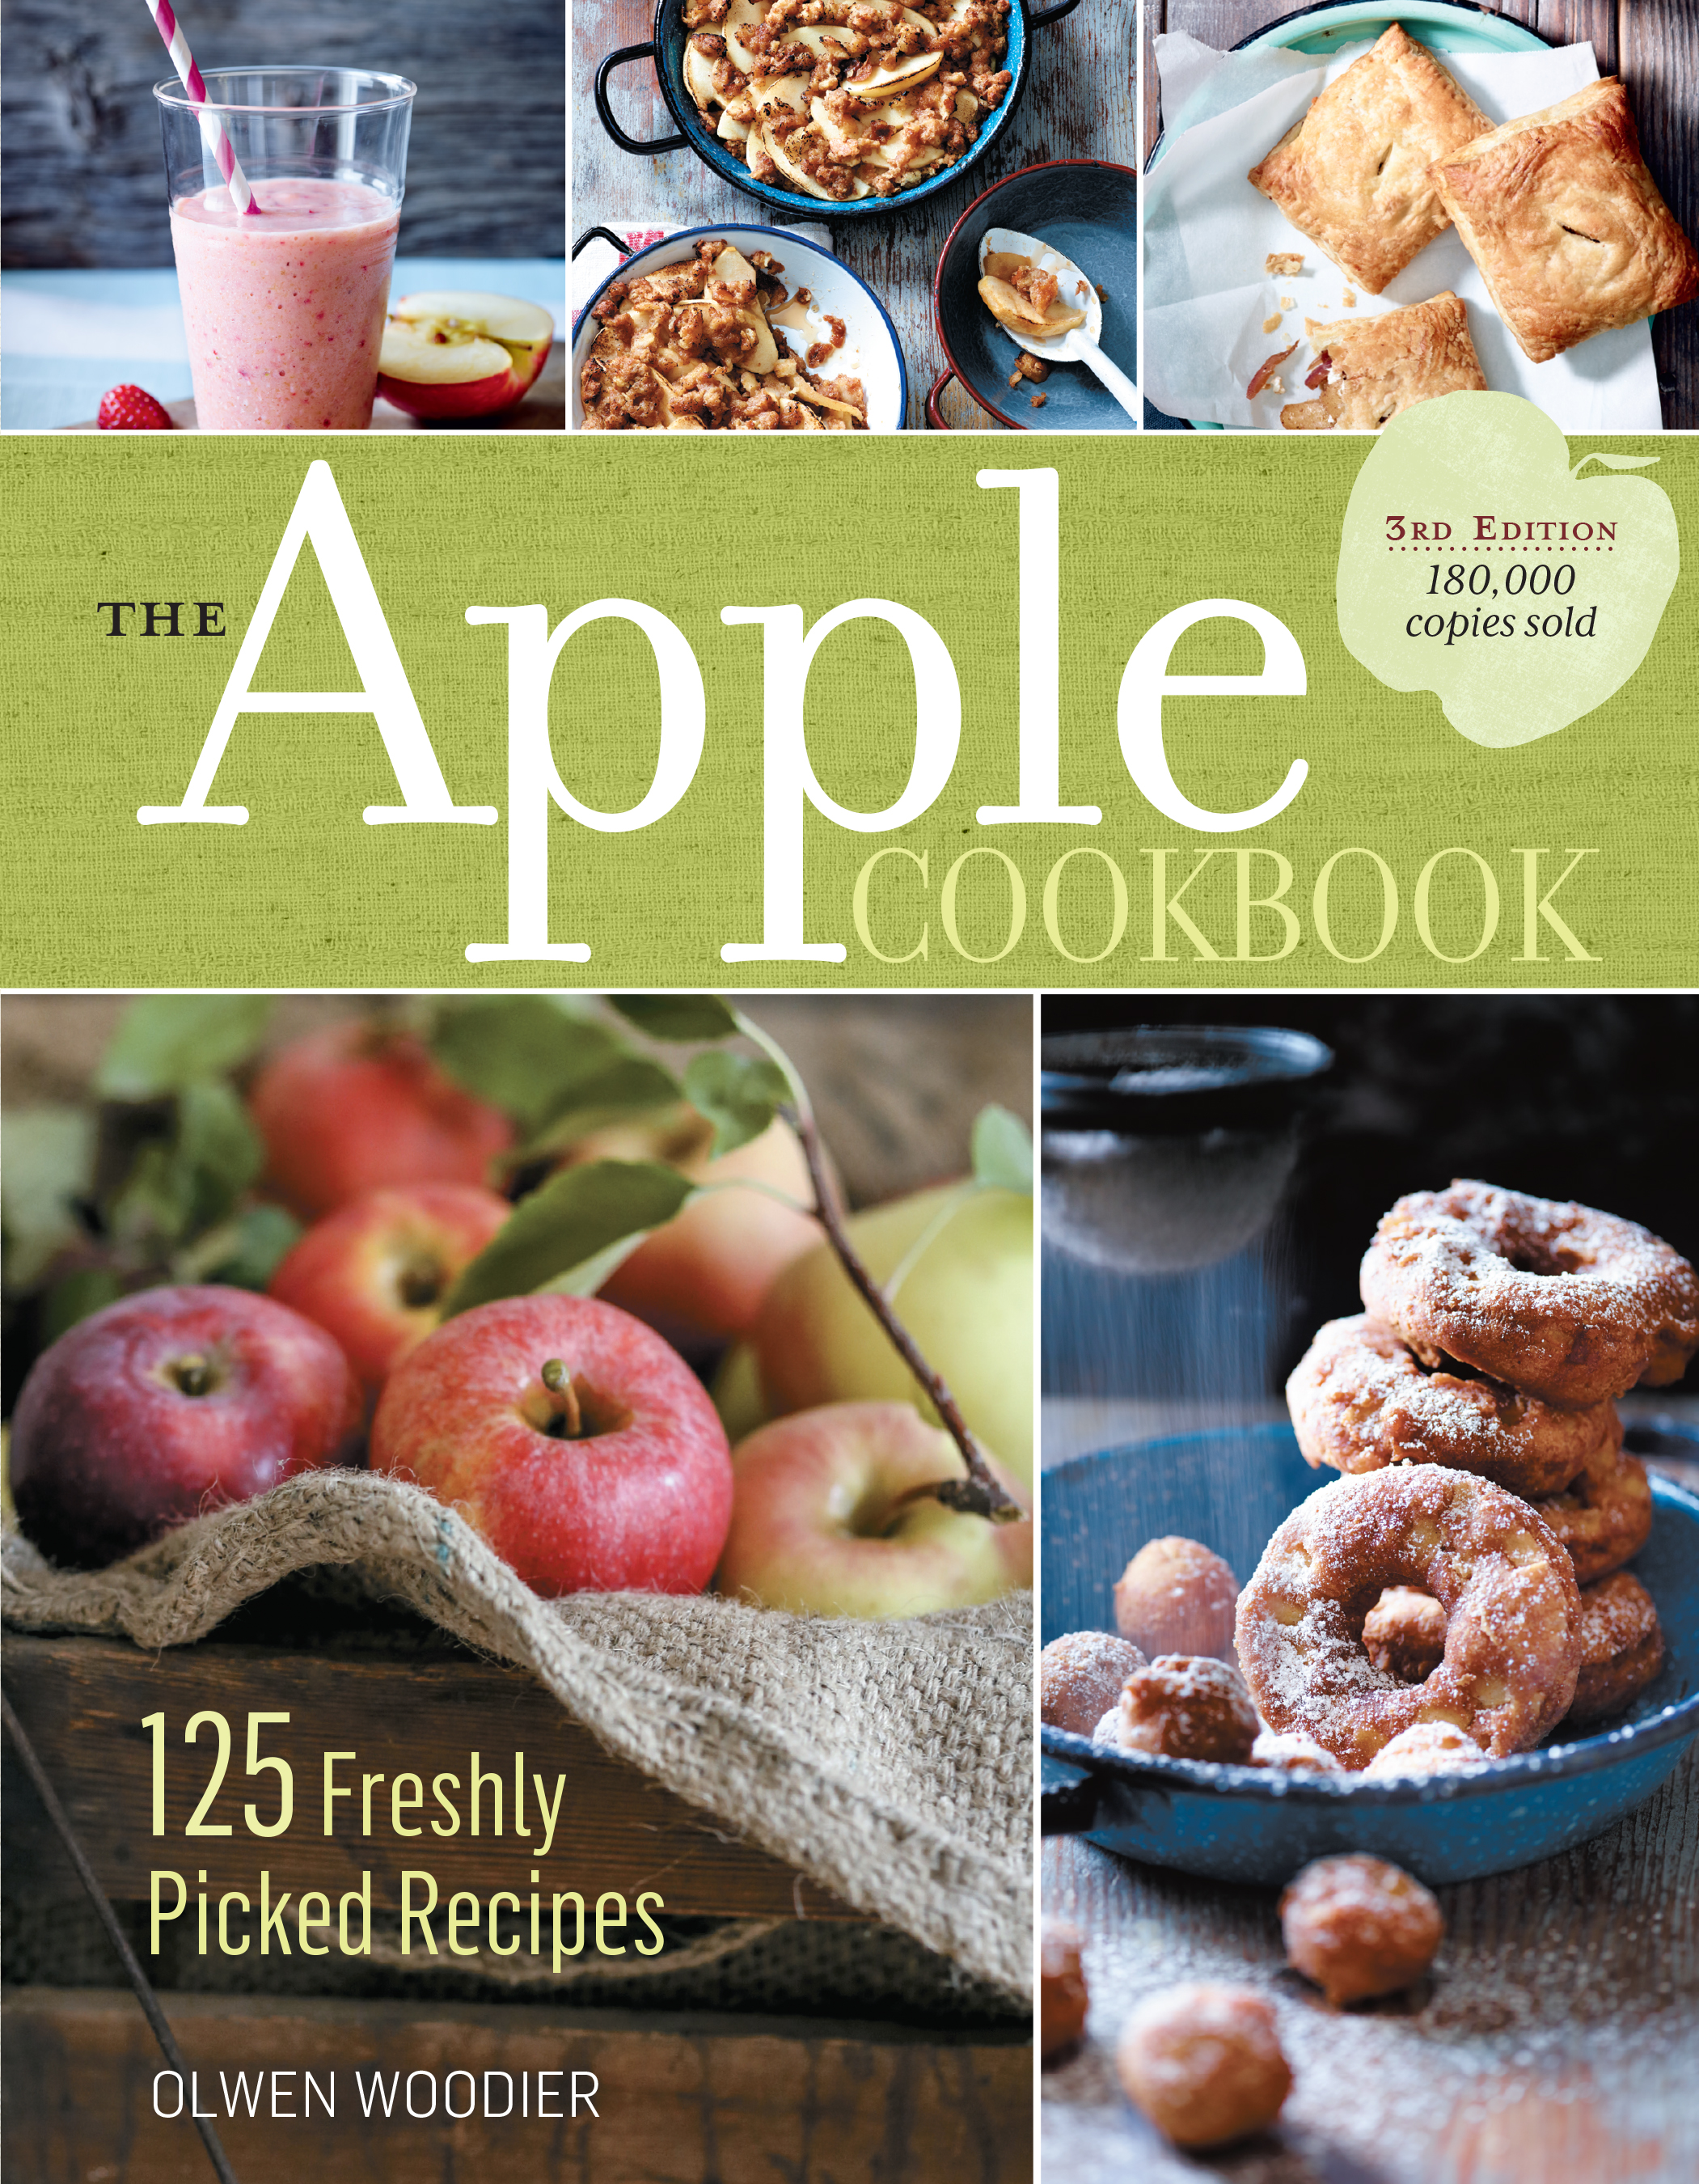 The Apple Cookbook, 3rd Edition 125 Freshly Picked Recipes - Olwen Woodier